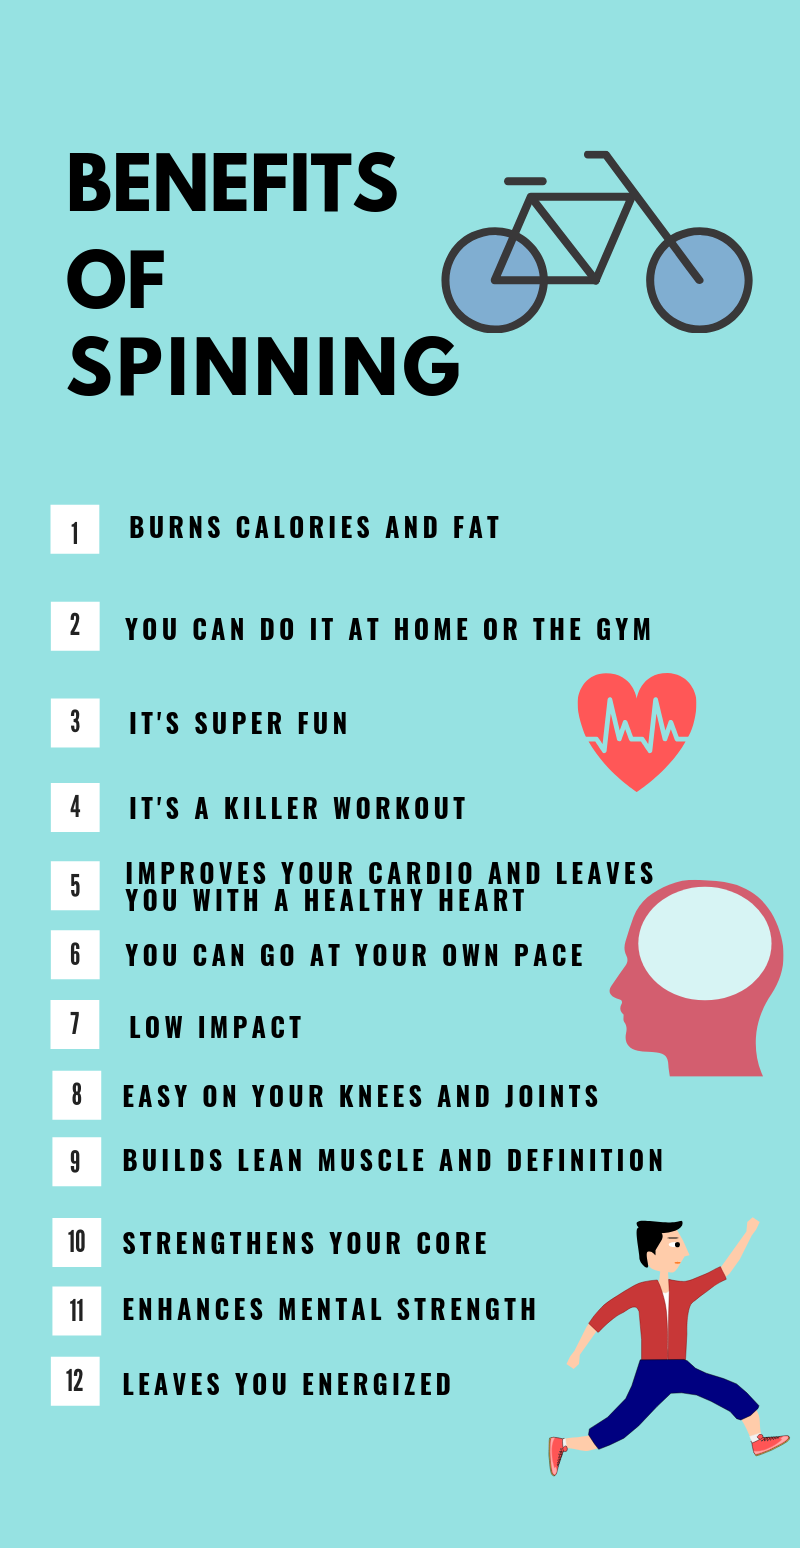 benefits of spinning infographic